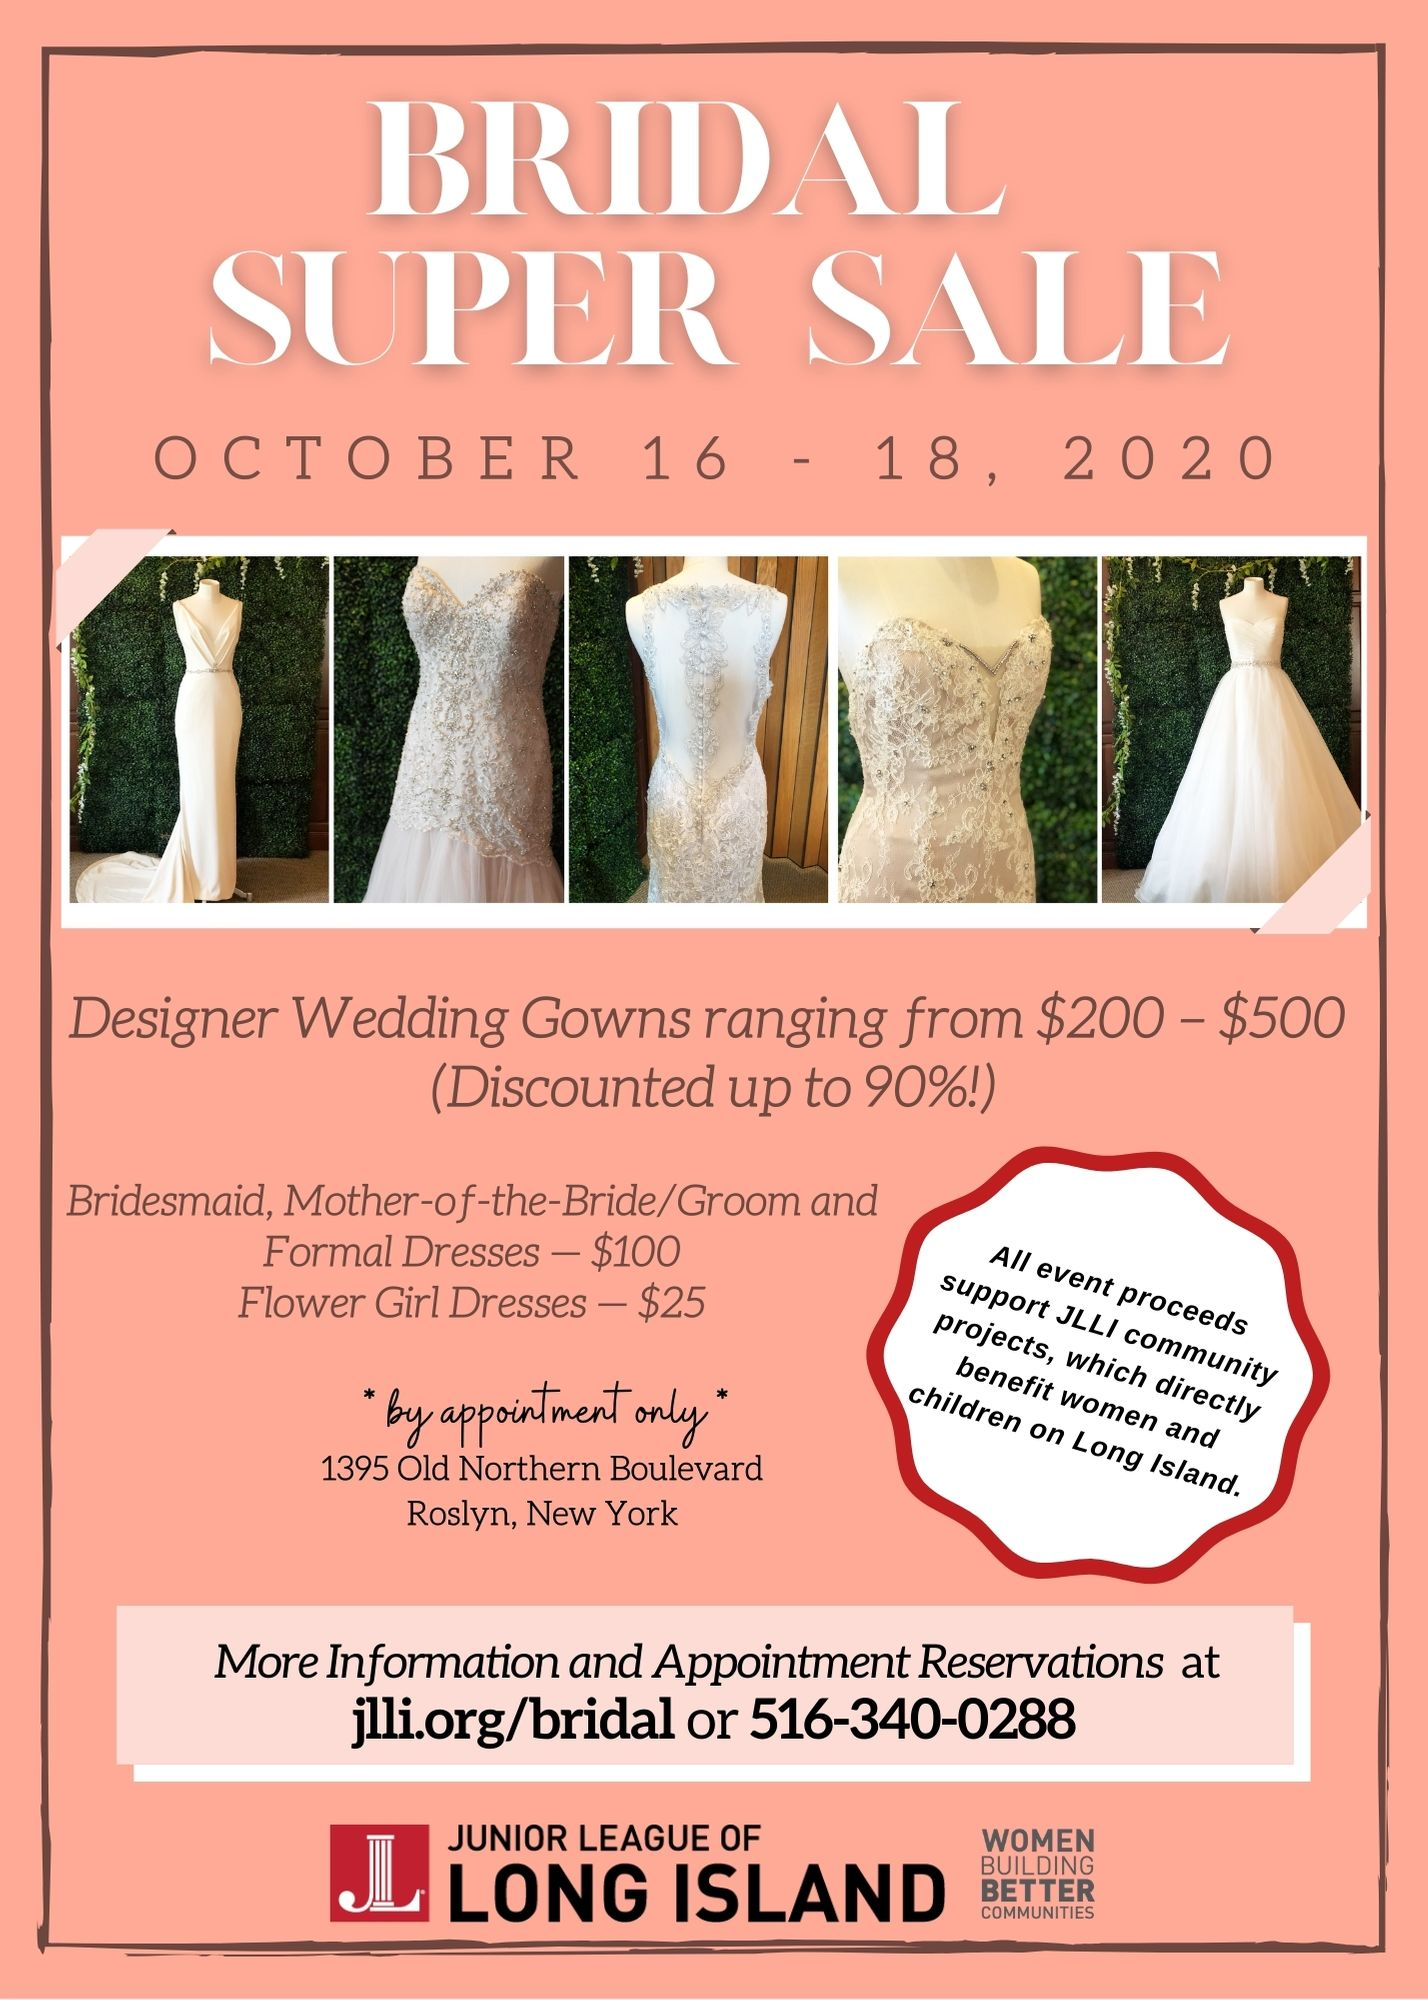 IN PERSON Junior League of Long Island - Bridal Super Sale at Junior League of Long Island HQ